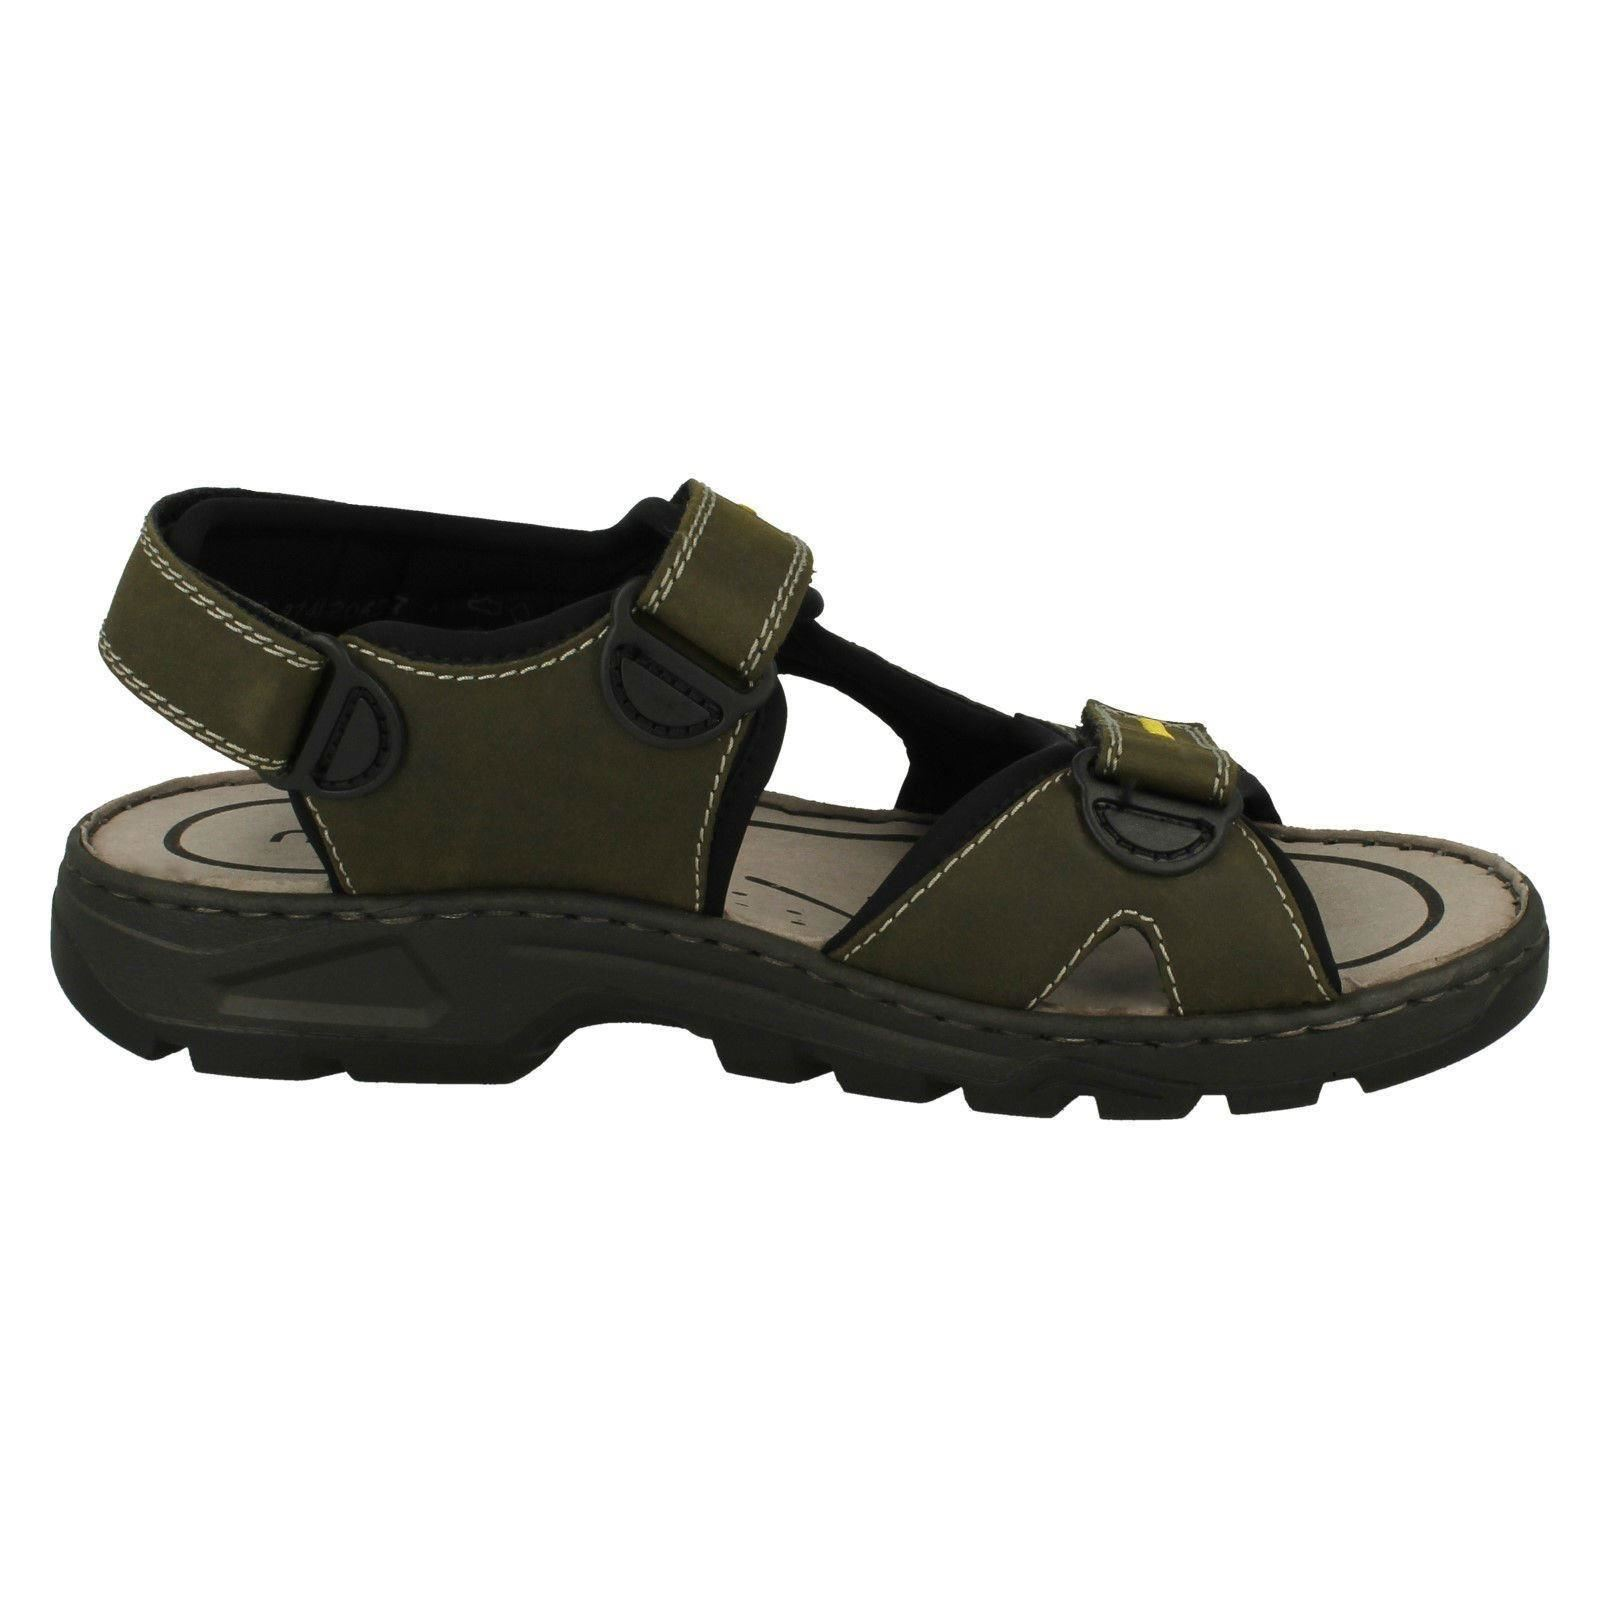 Rieker Mens Strapped Casual Strapped Mens Sandals - 26157 c09306